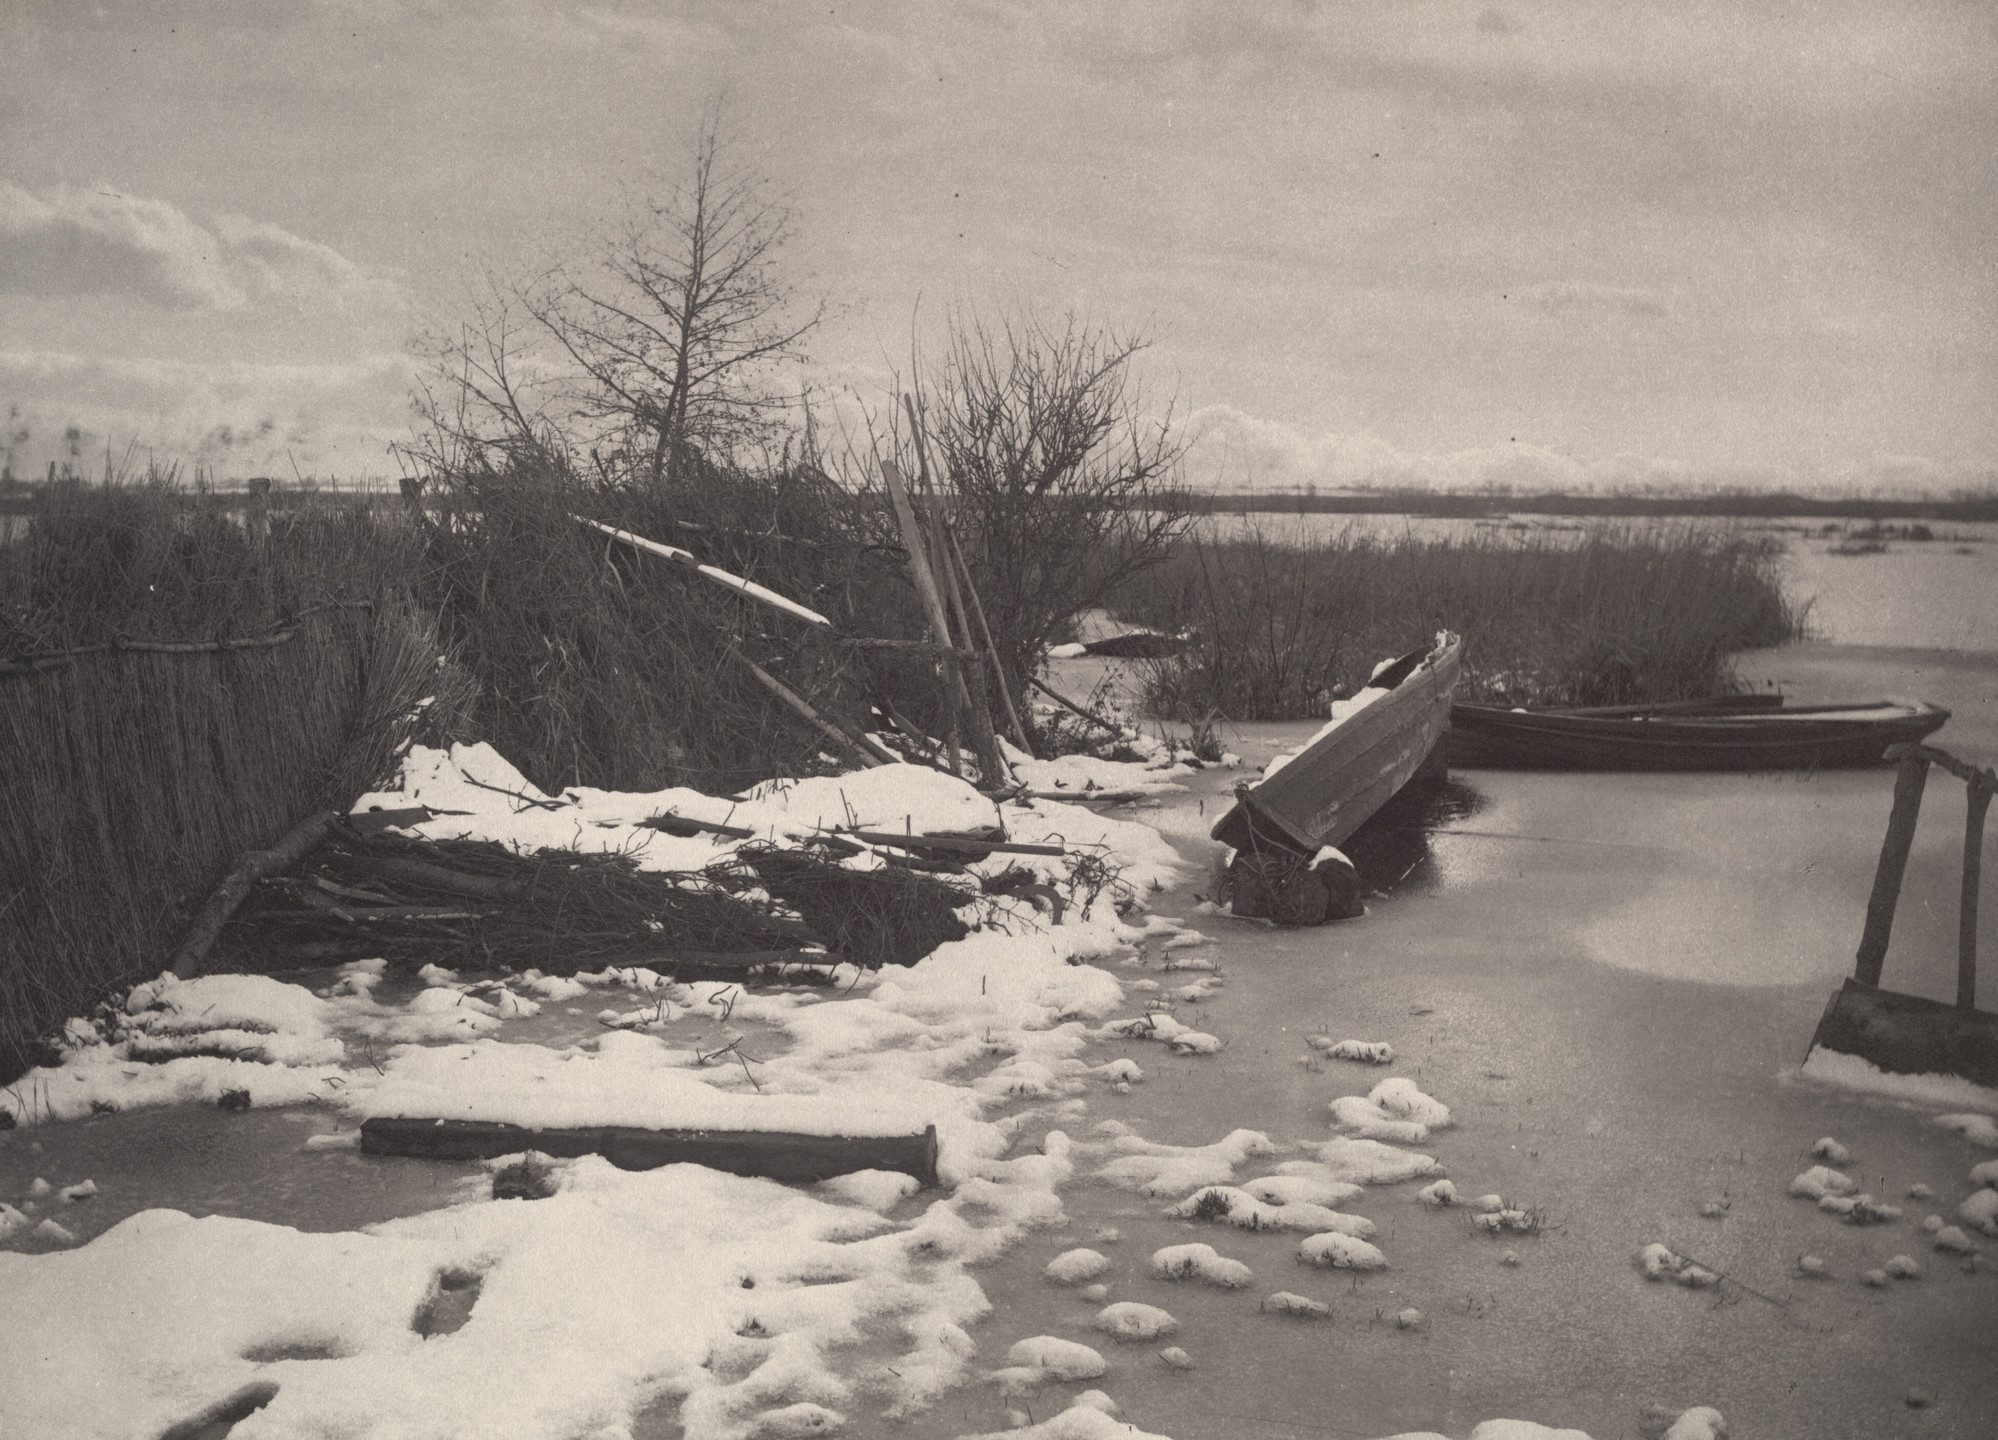 Peter Henry Emerson, T. F. Goodall. The First Frost from Life and Landscape on the Norfolk Broads (London, 1886). c. 1885